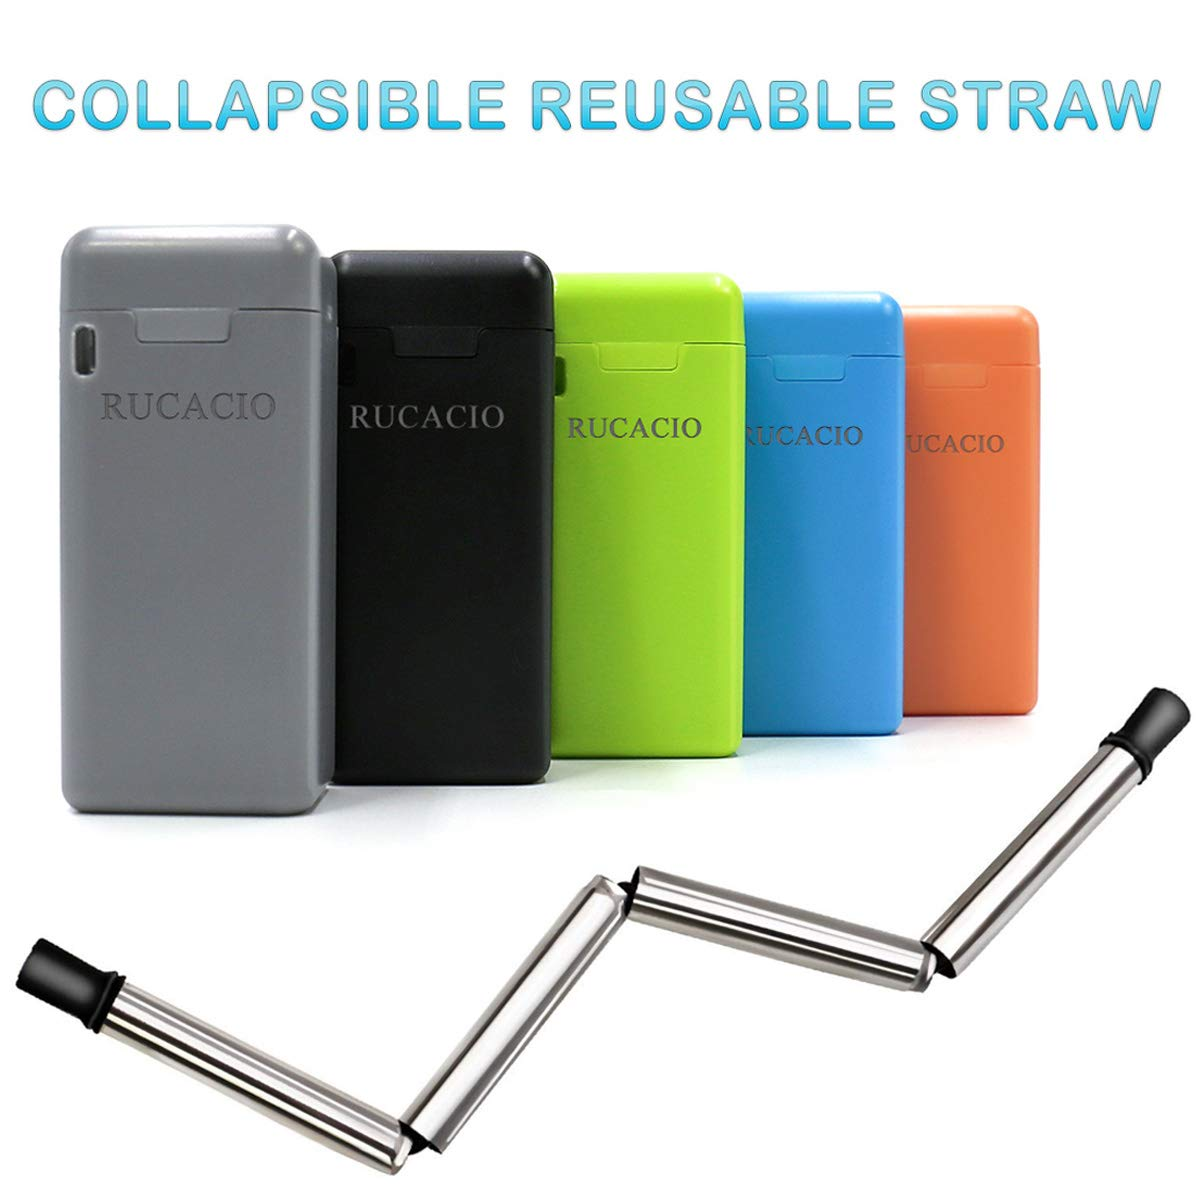 RUCACIO Folding Drinking Straw Stainless Steel, Collapsible Reusable Stainless Straw Medical-Grade Food-Grade Drinking Straws Portable with Hard Case Cleaning Brush